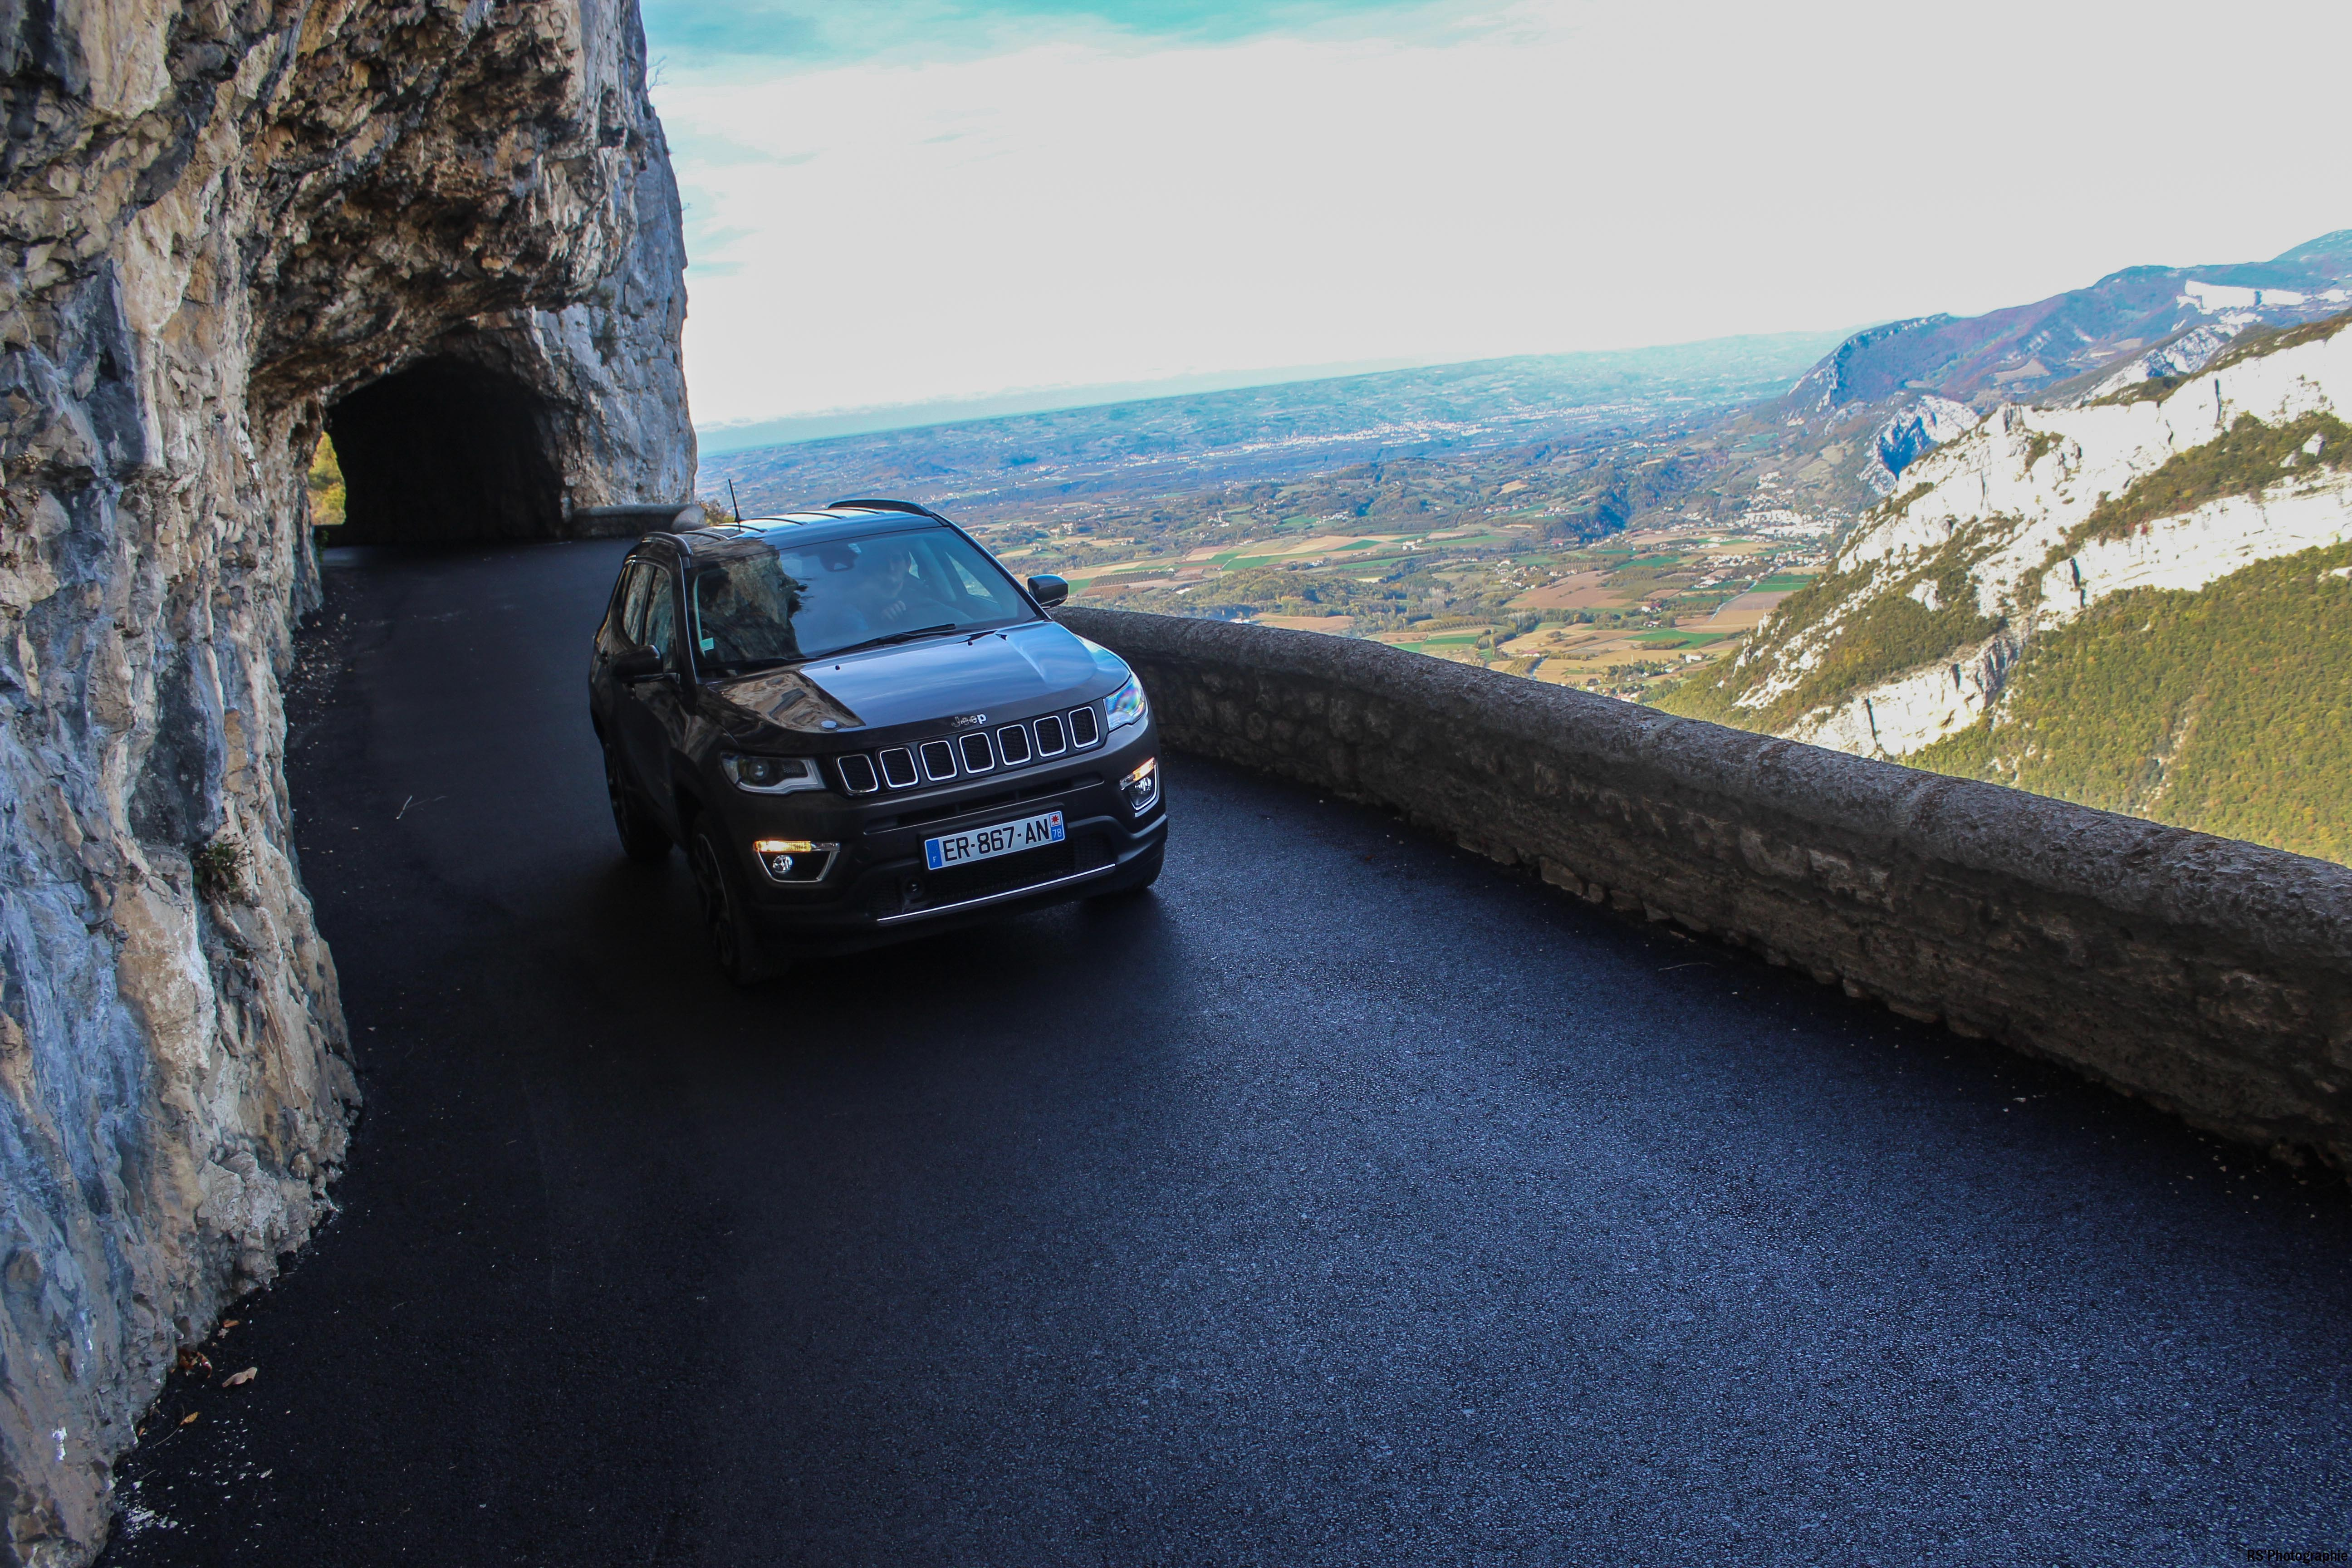 jeepcompass46-jeep-compass-avant-front-Arnaud Demasier-RSPhotographie